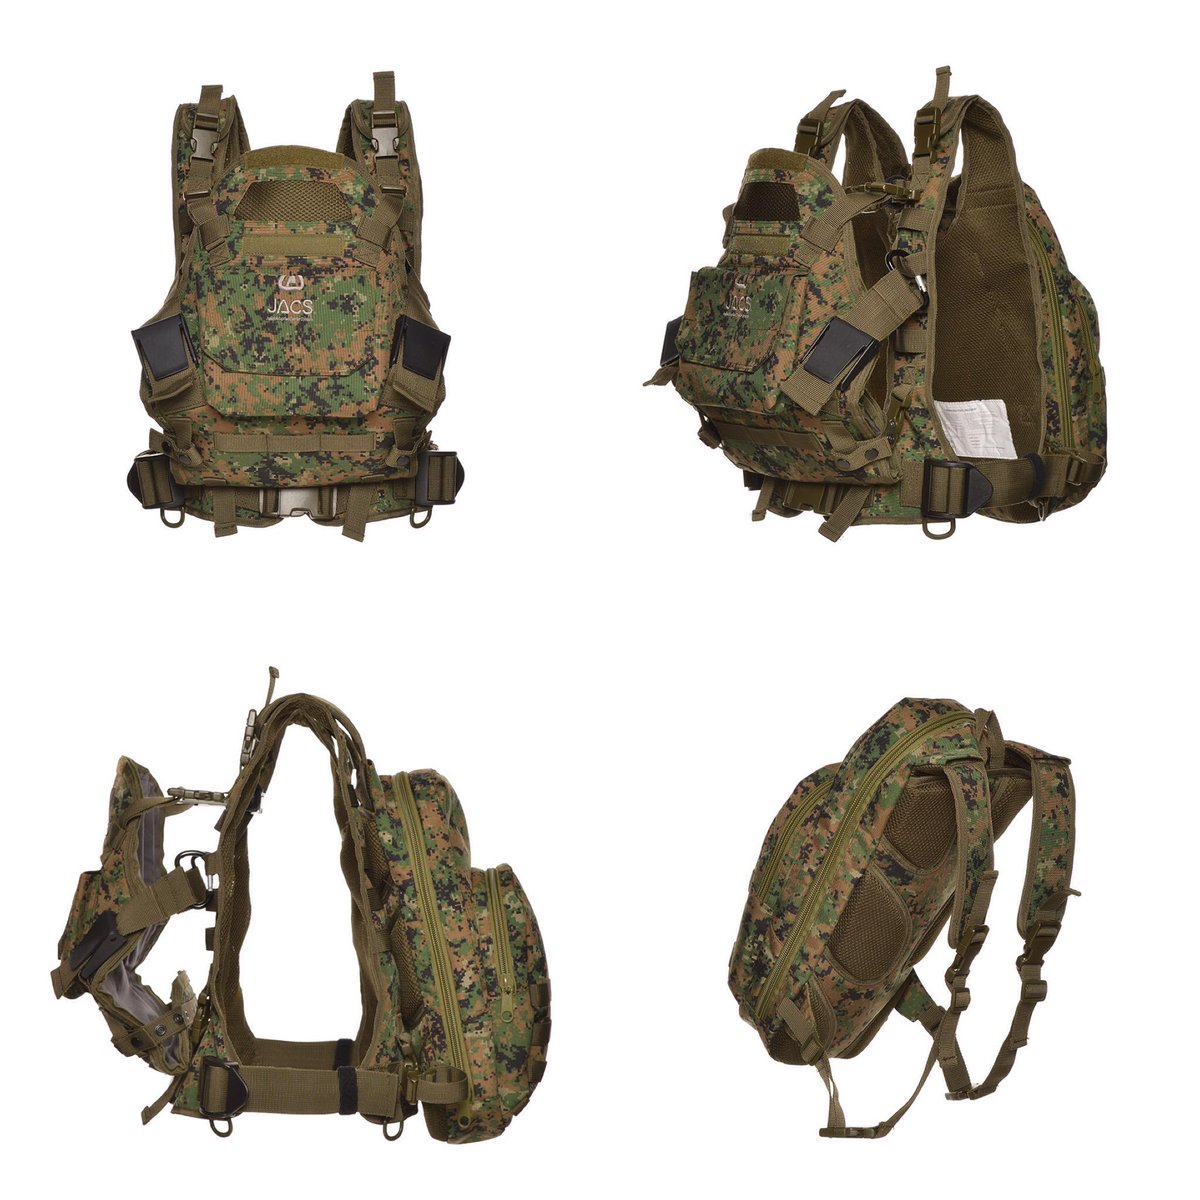 Jacs Baby Carrier On Twitter Go Tactical With A Camo Jacs